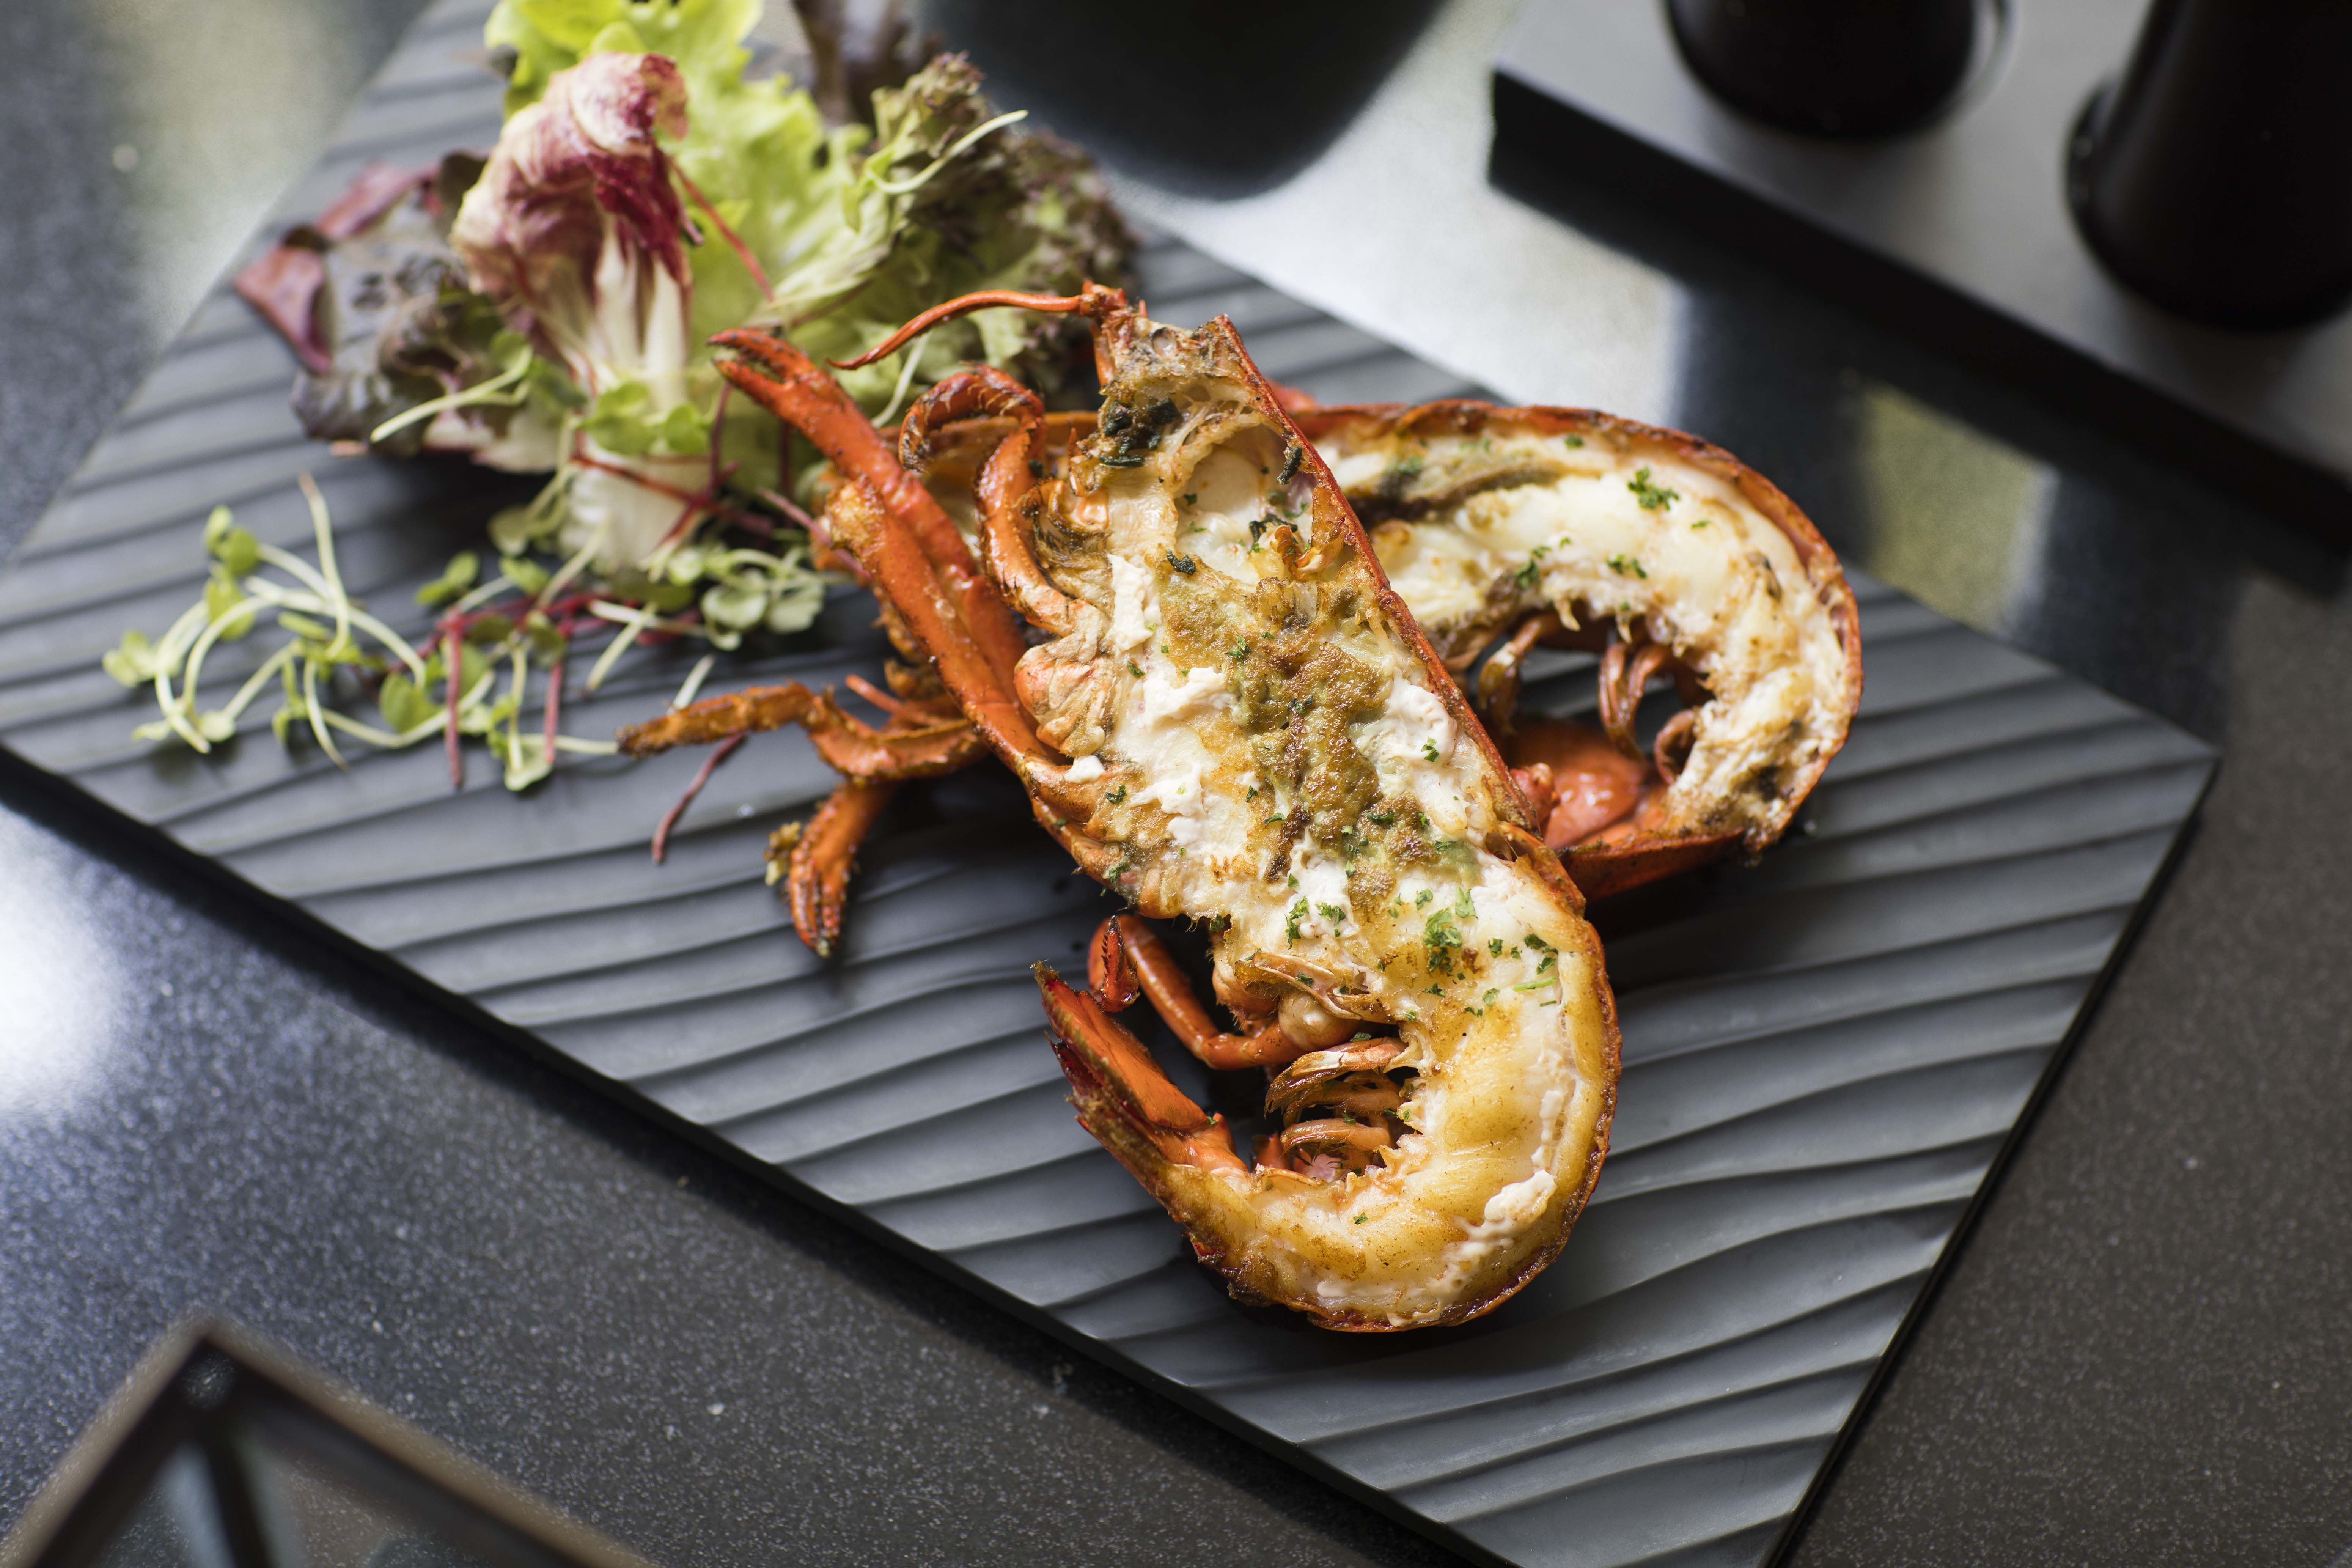 01.Unlimited Grilled Lobster_Sunday Brynch Extravaganza at The Rain Tree Cafe - The Athenee Hotel